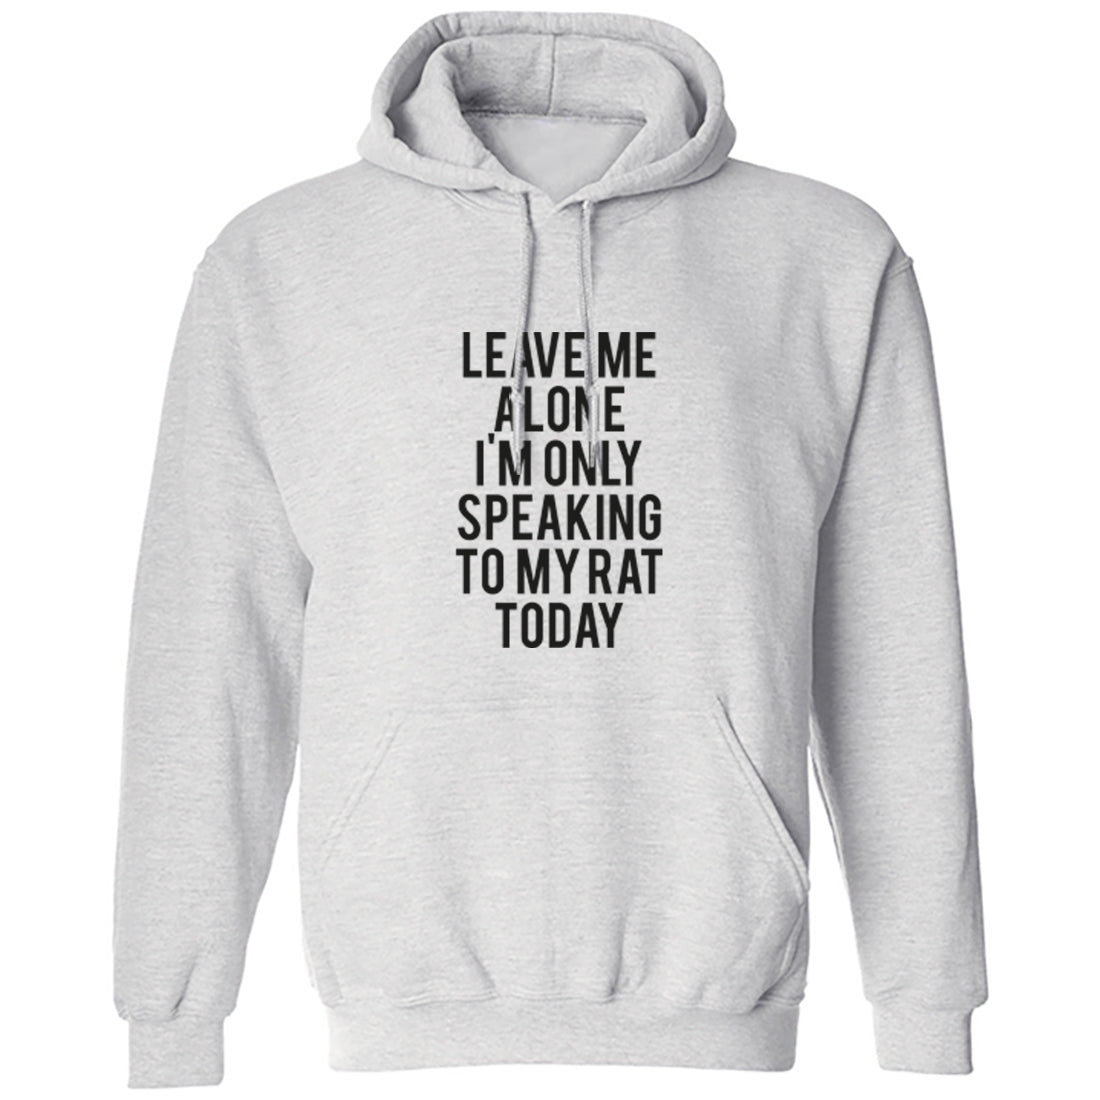 Leave Me Alone I'm Only Speaking To My Rat Today Unisex Hoodie K0948 - Illustrated Identity Ltd.